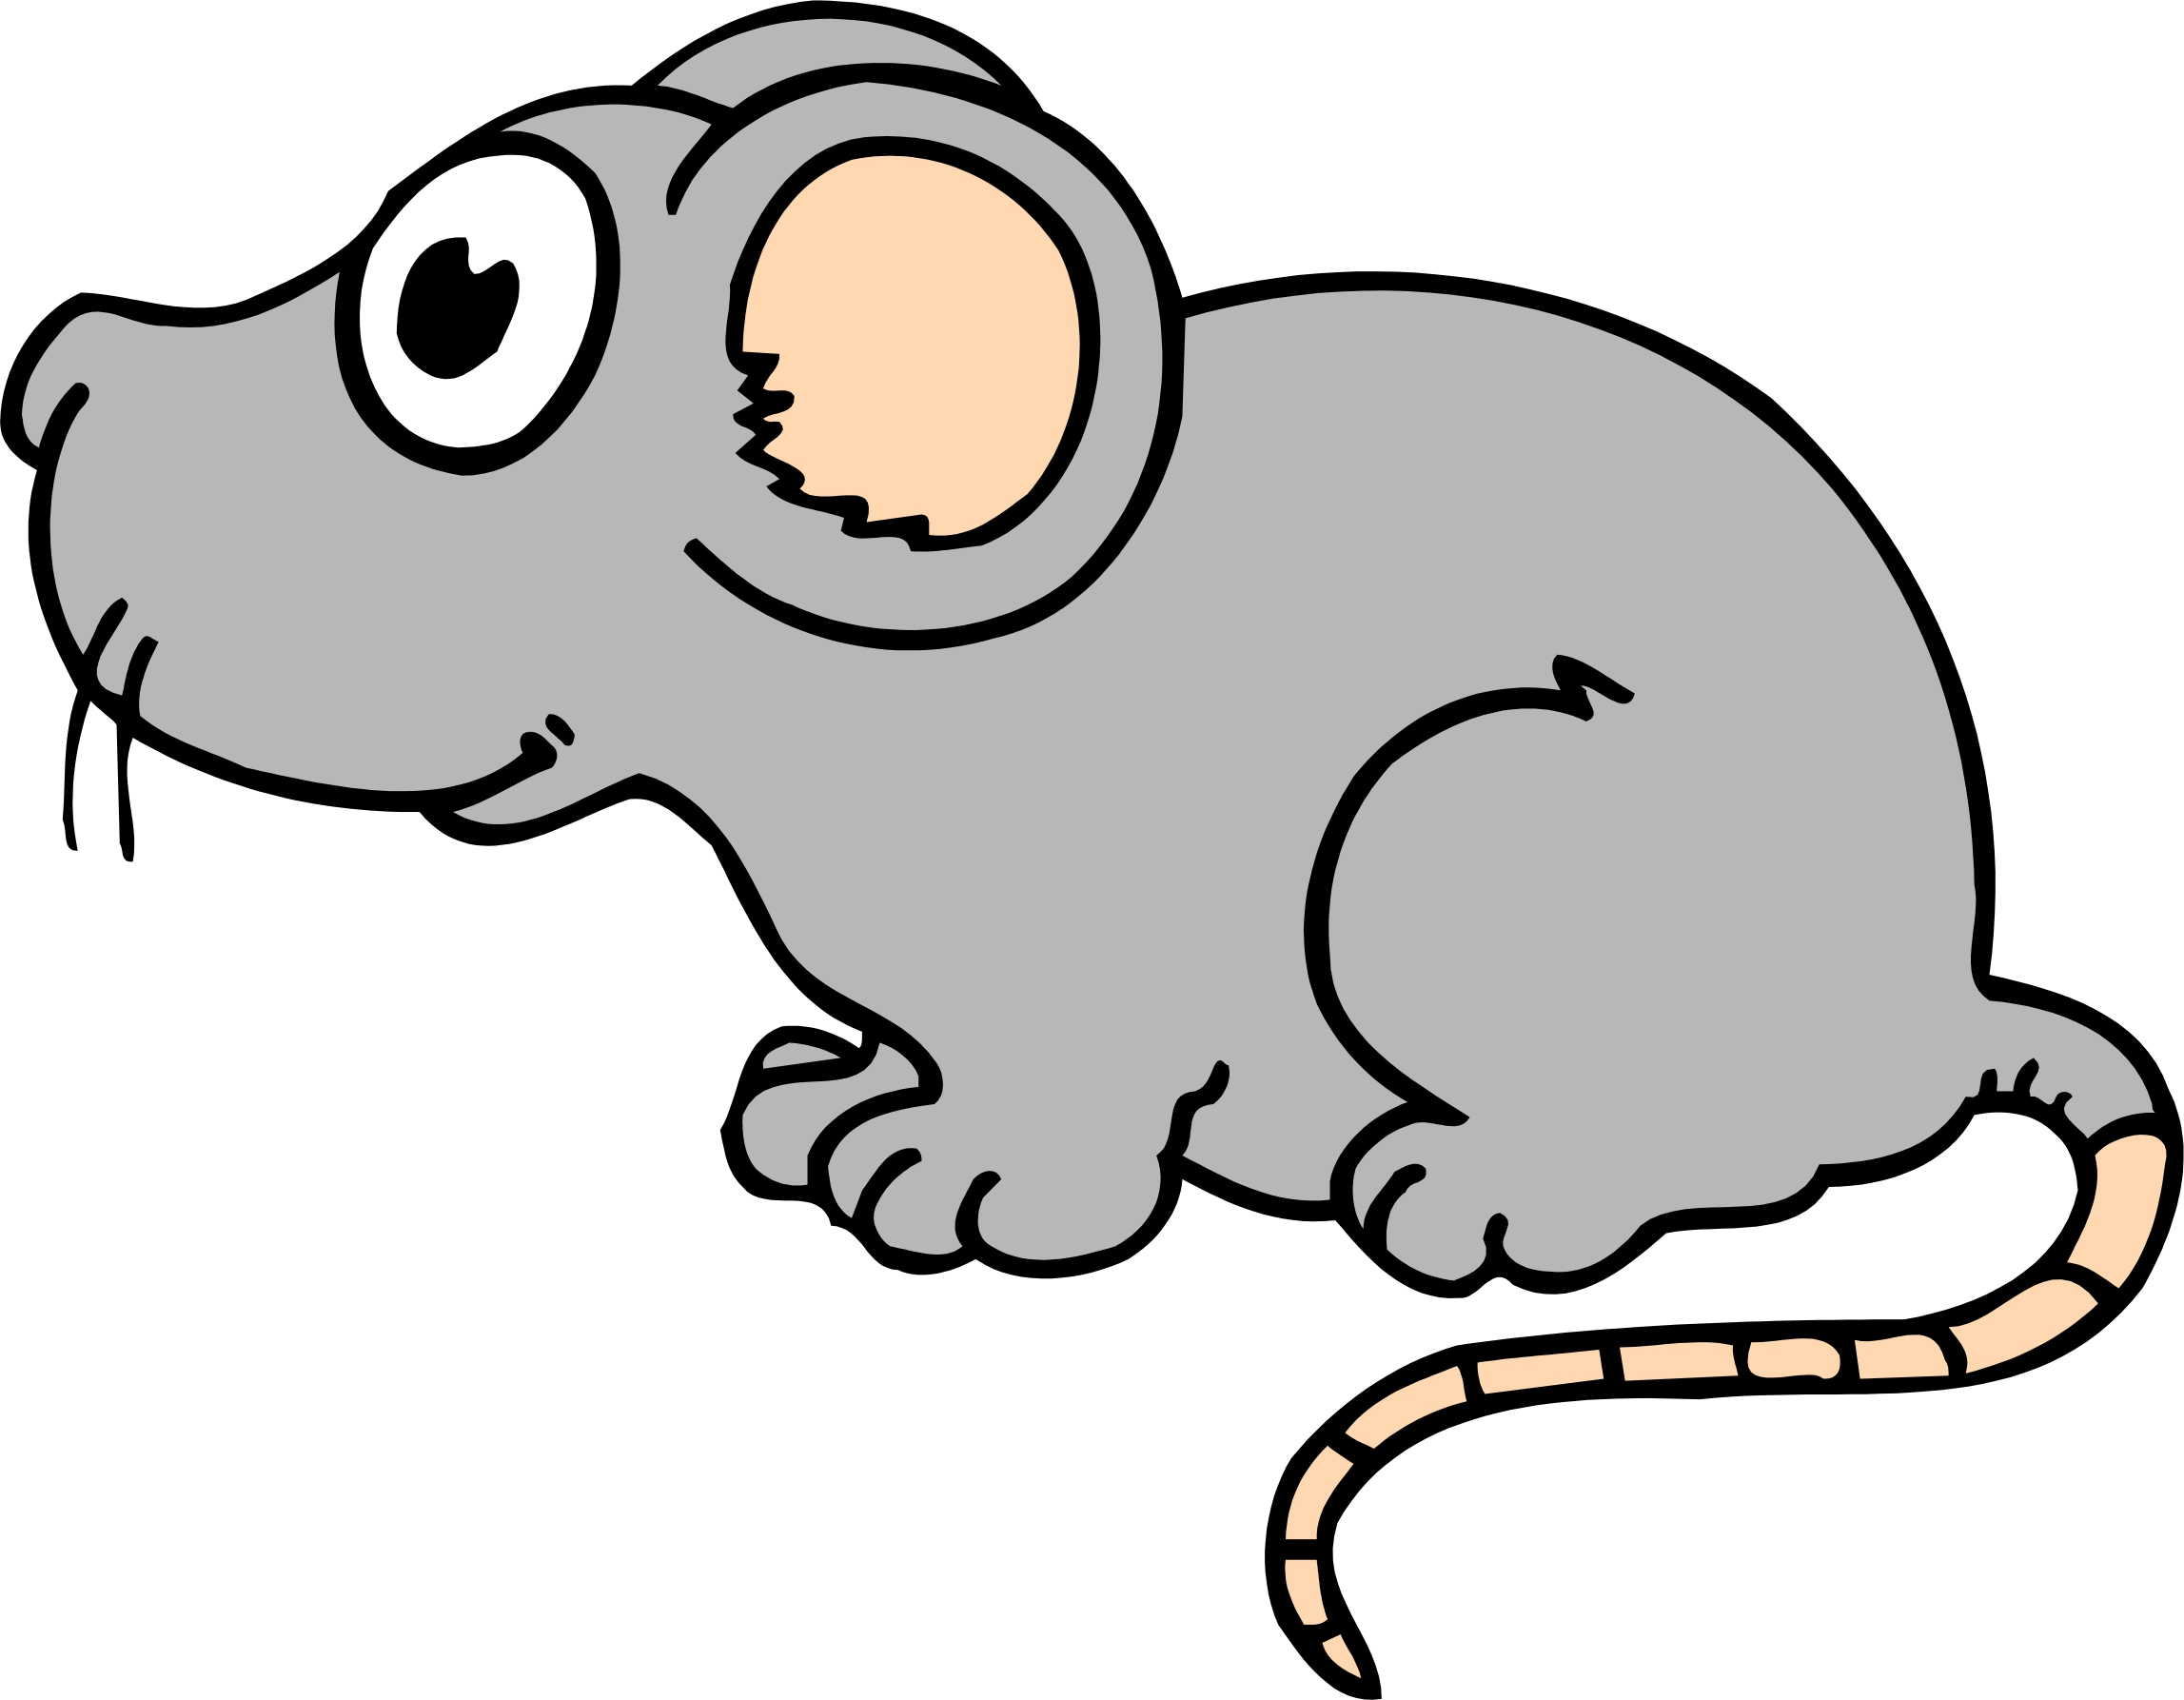 Science clipart mouse #10